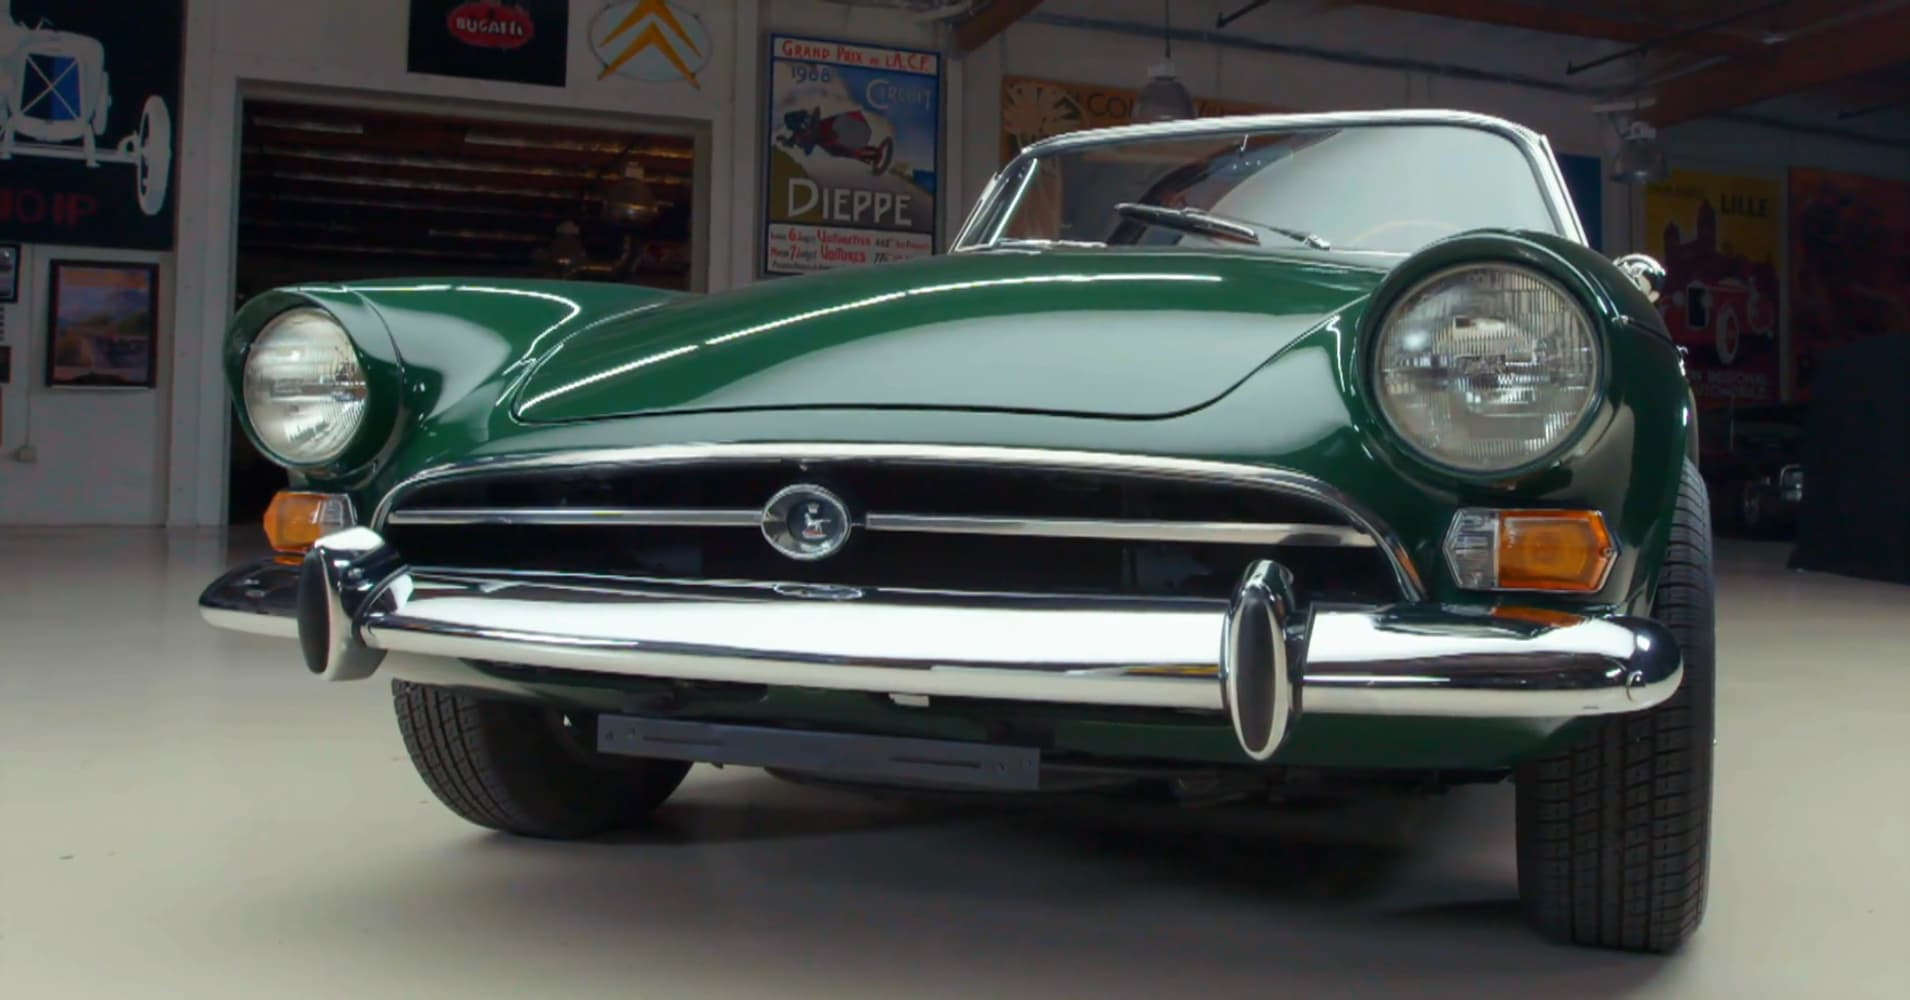 The last of the kind this sunbeam tiger gets valued at a price the owner